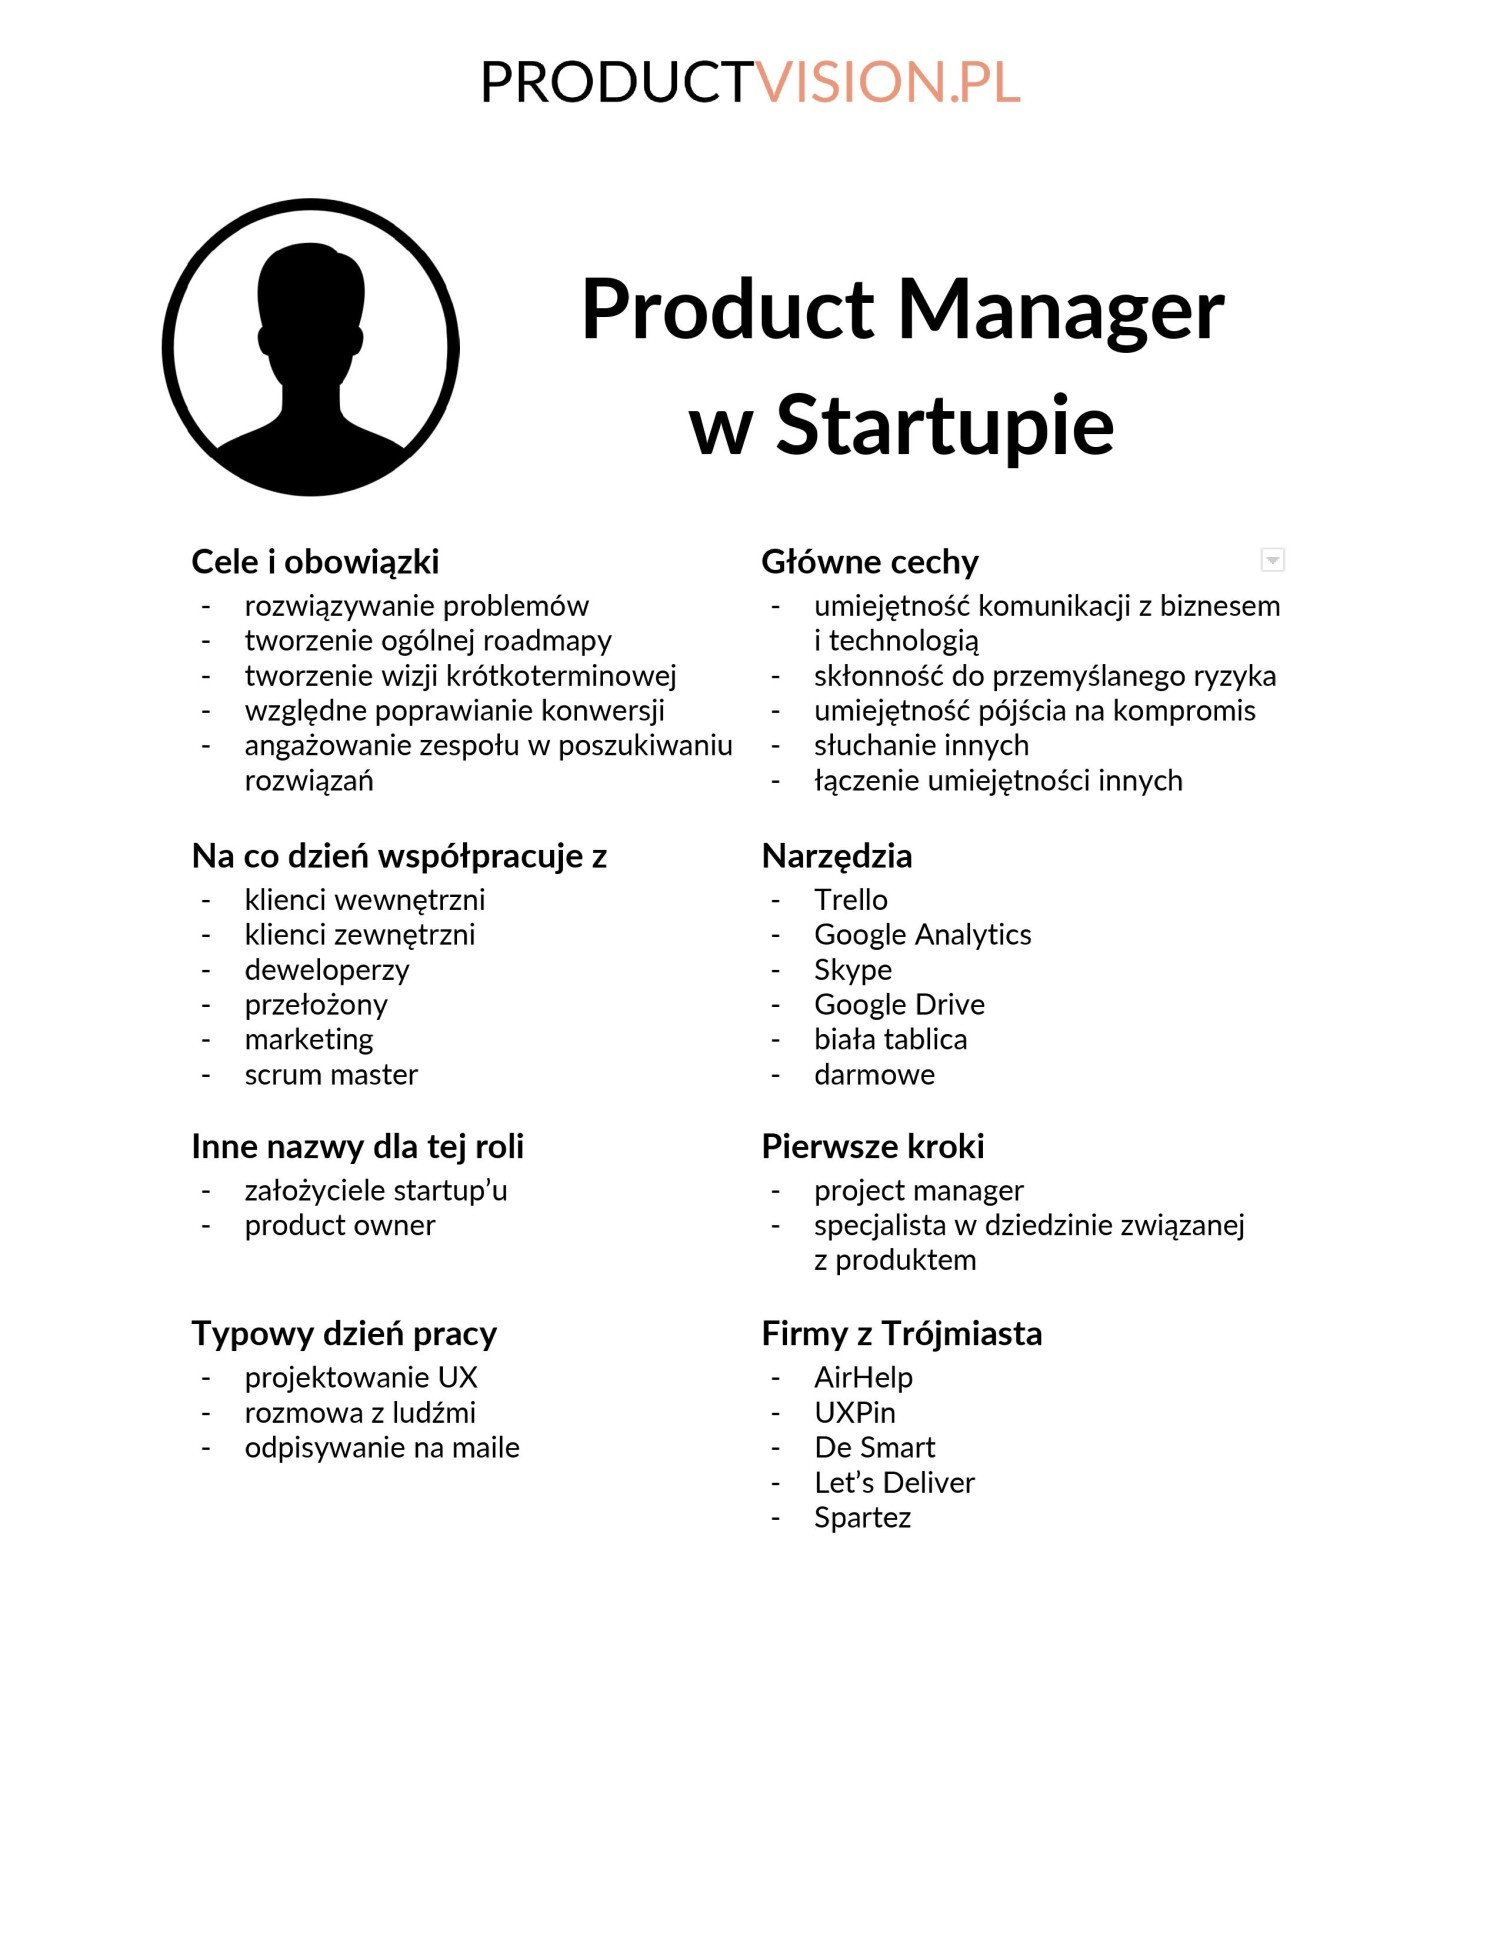 Persona - Product Manager w Startupie